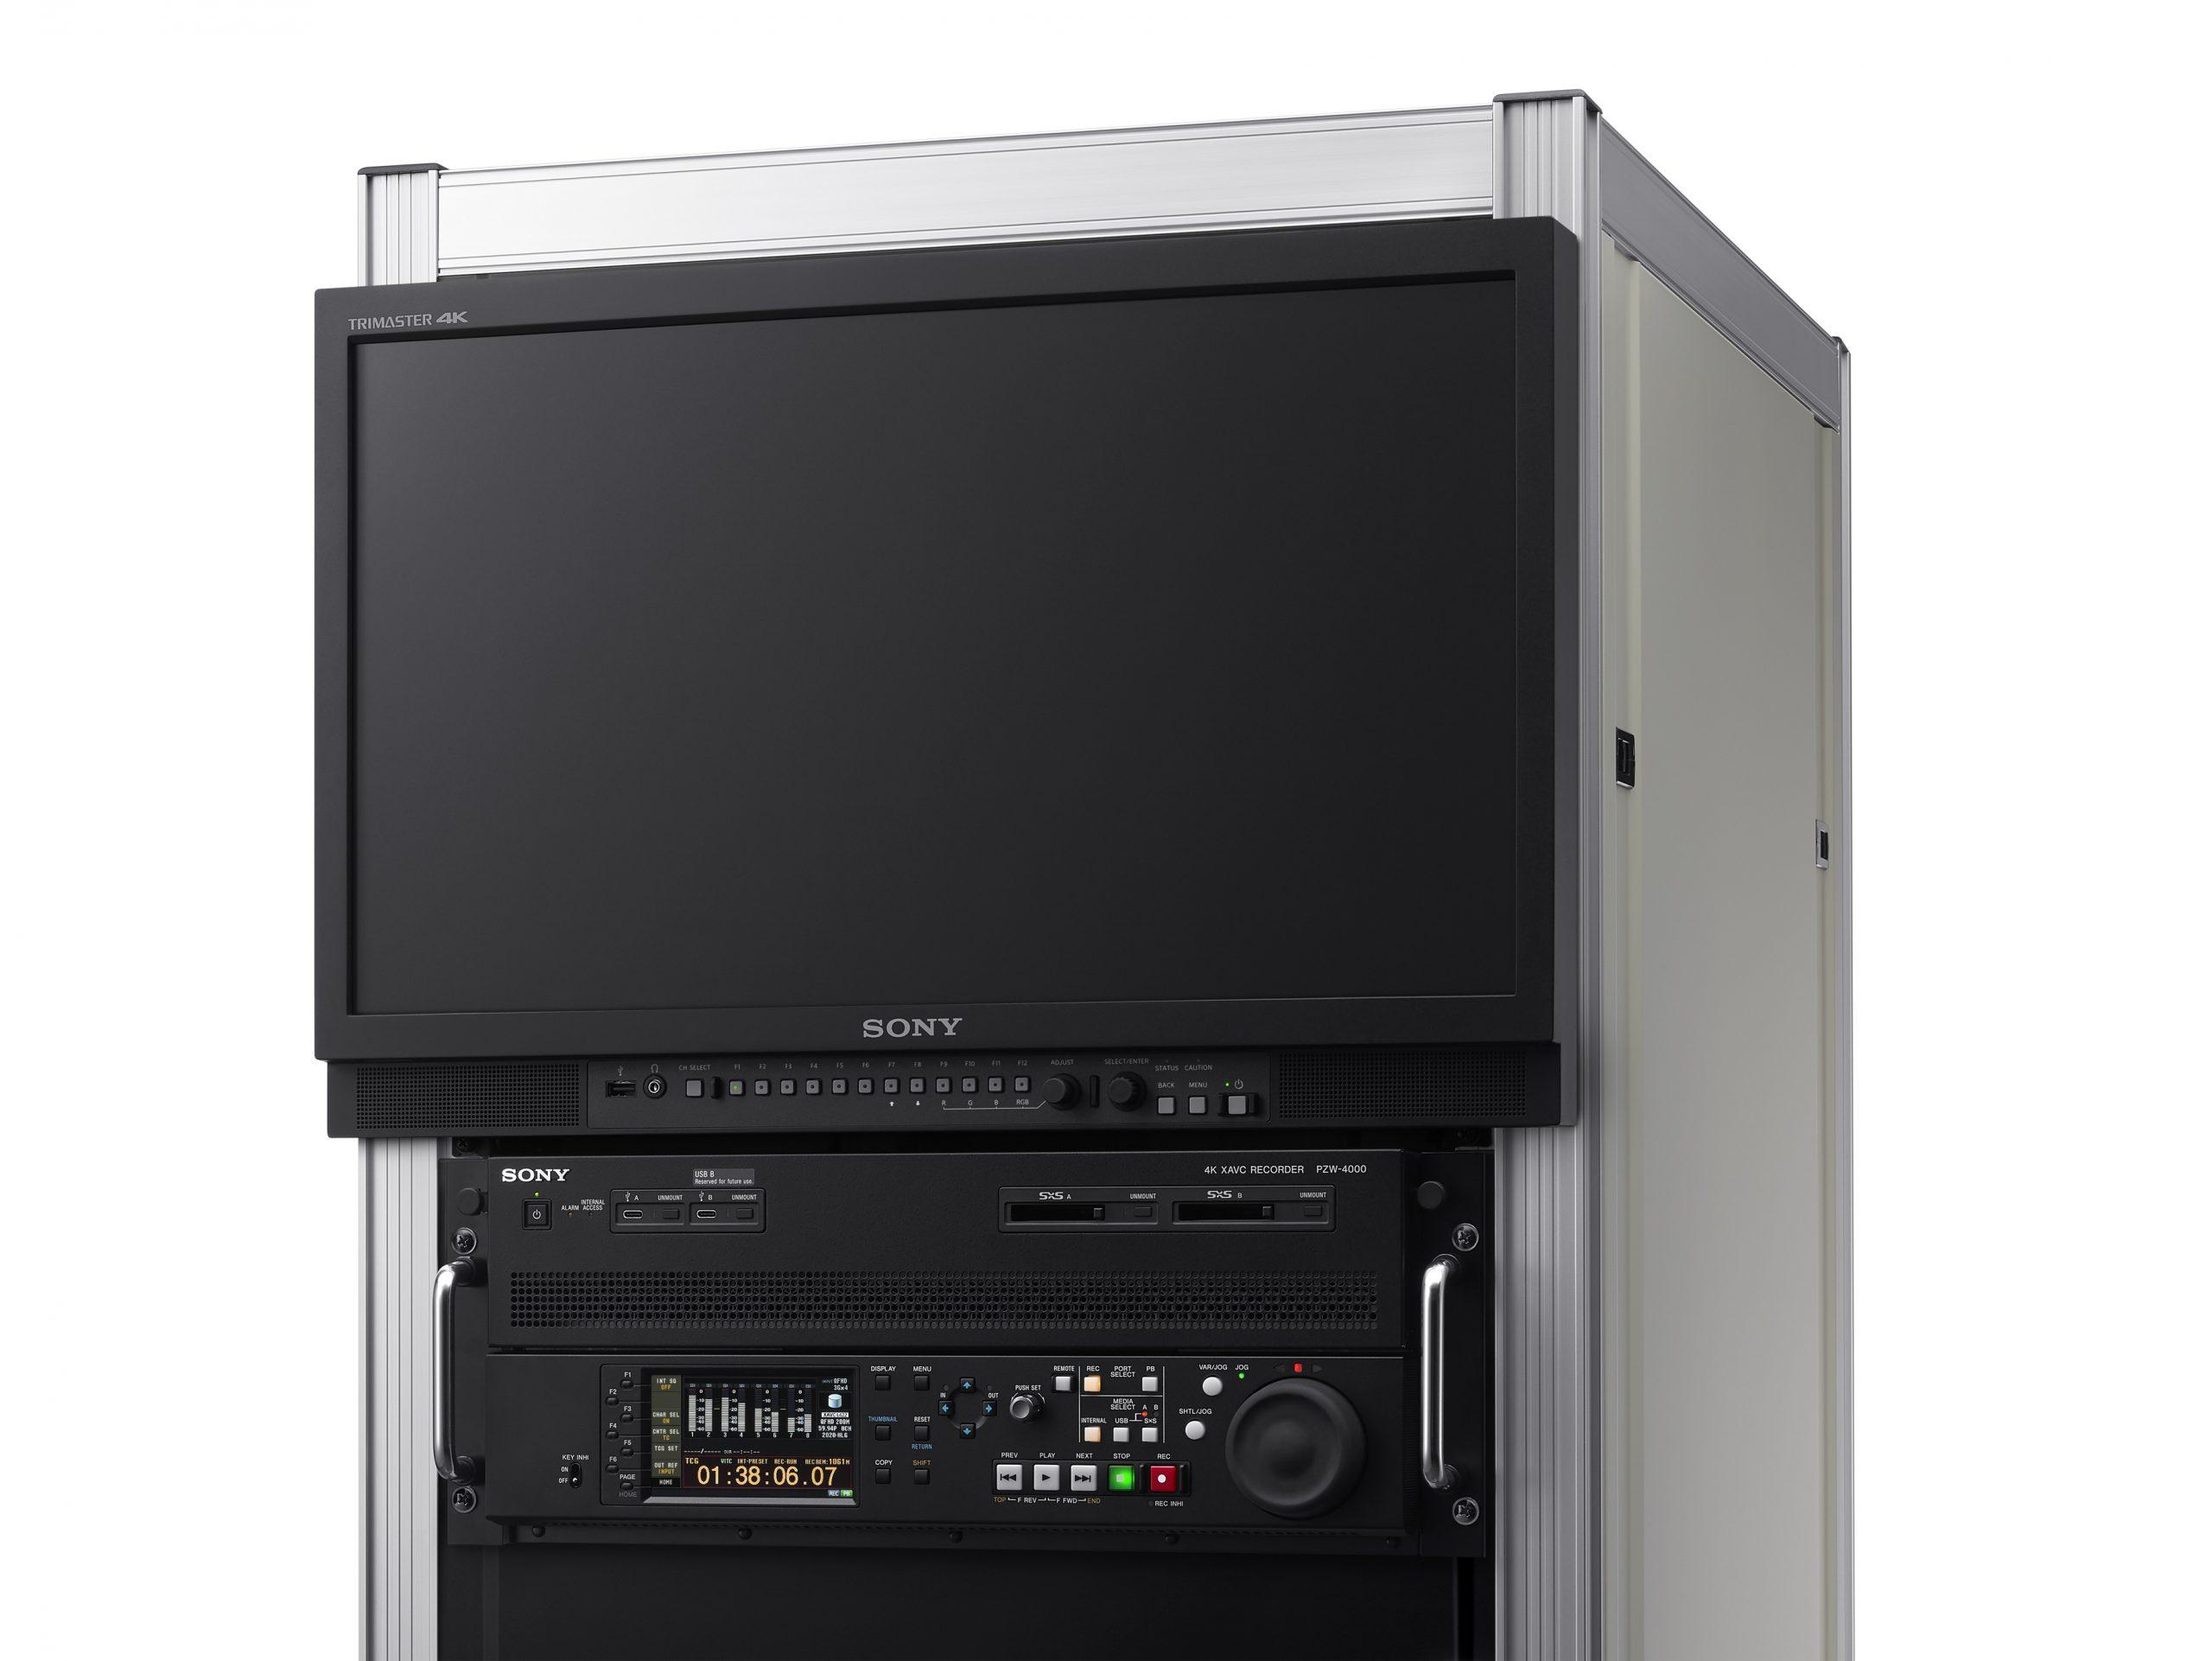 Sony Trimaster PMV-X2400 4K HD rack